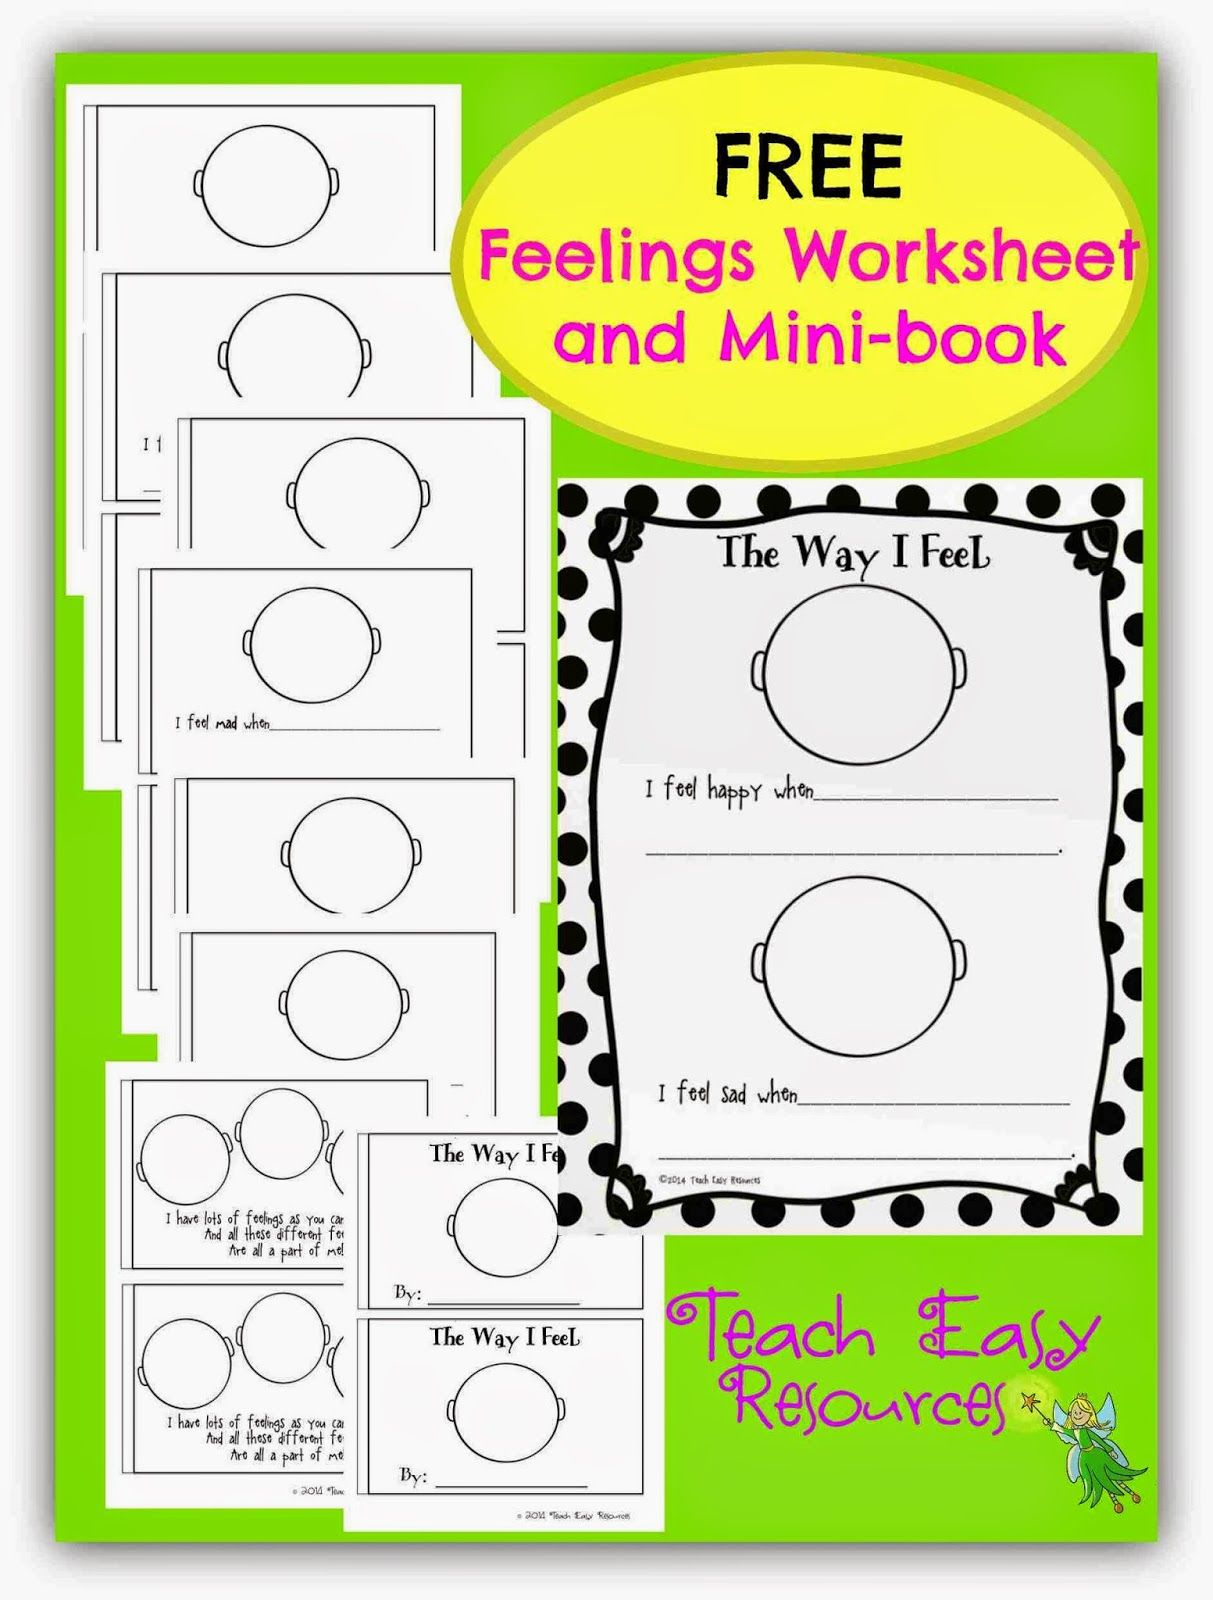 Feelings Worksheet And Mini Book For Pre K To 1 In